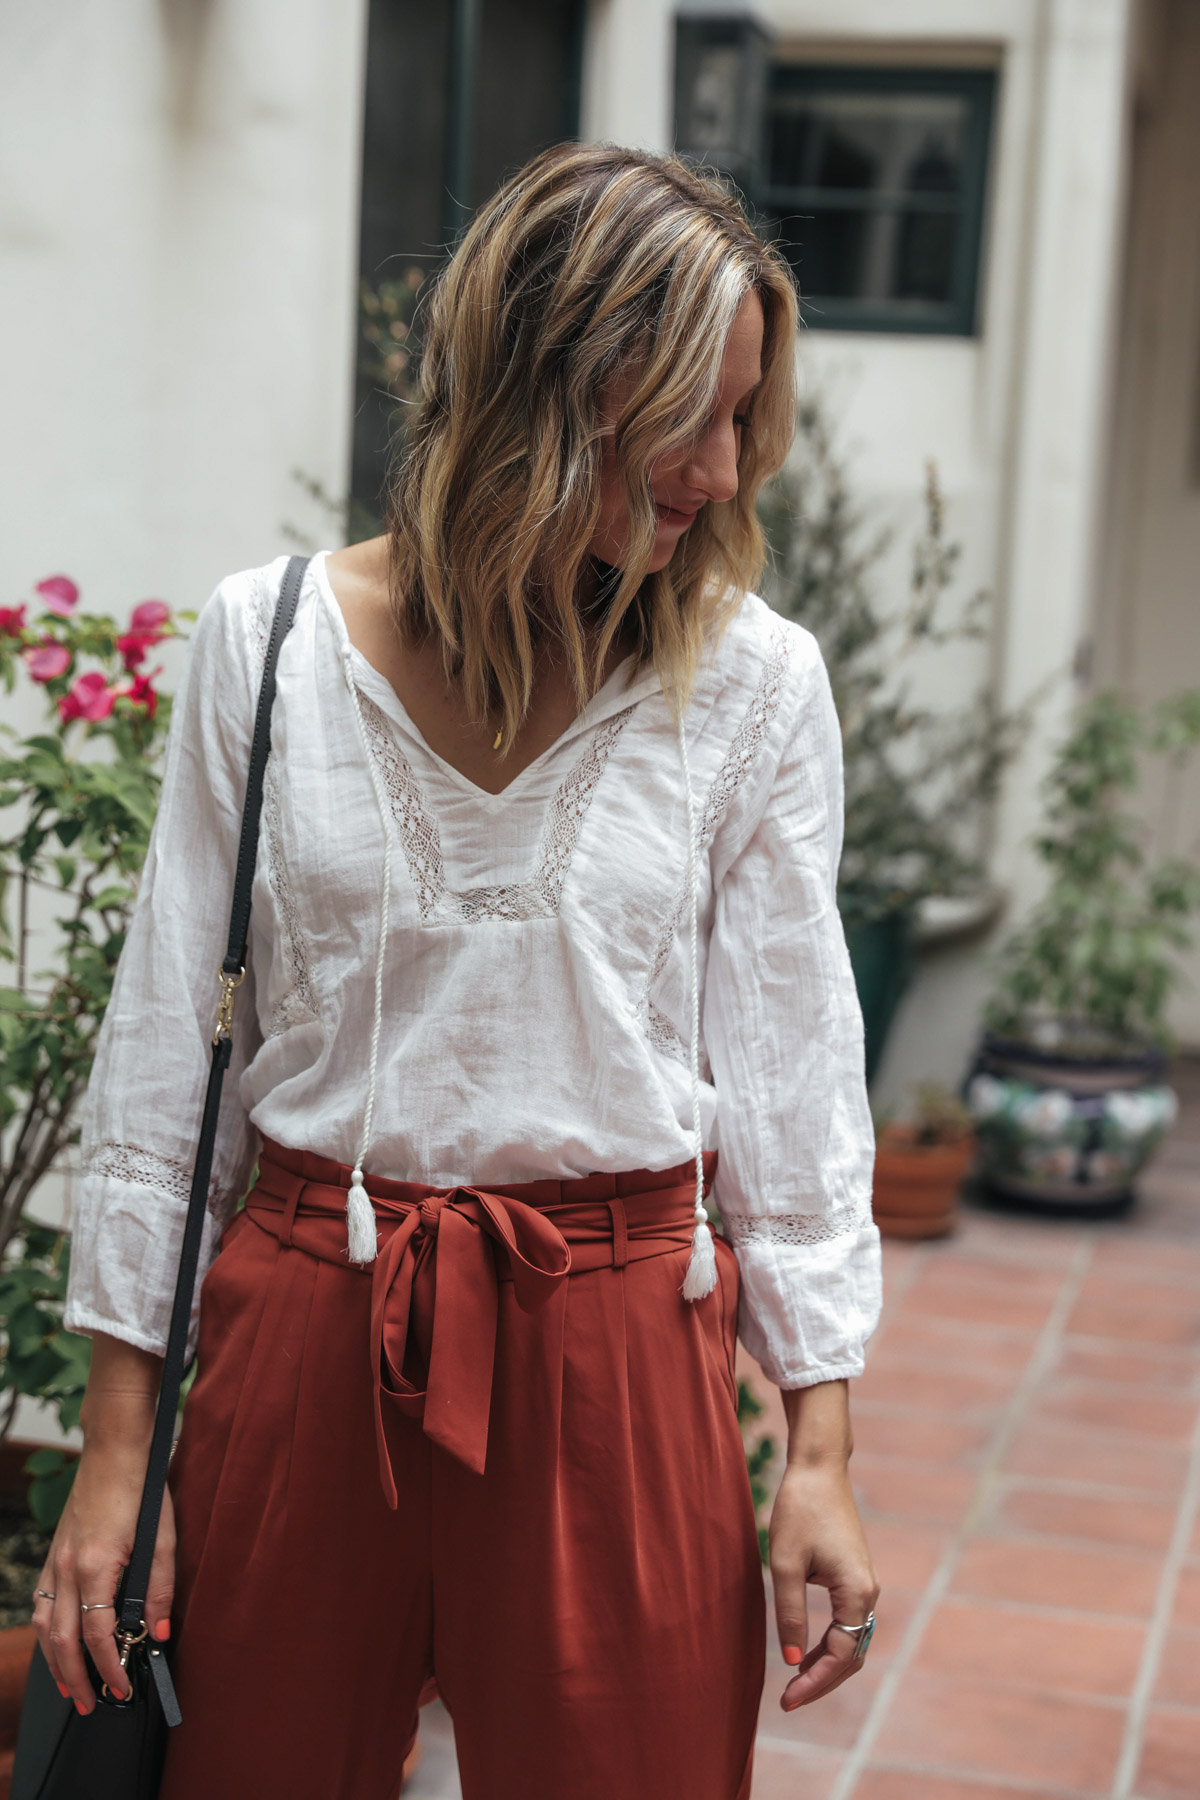 thredUP outfit with joie white boho top